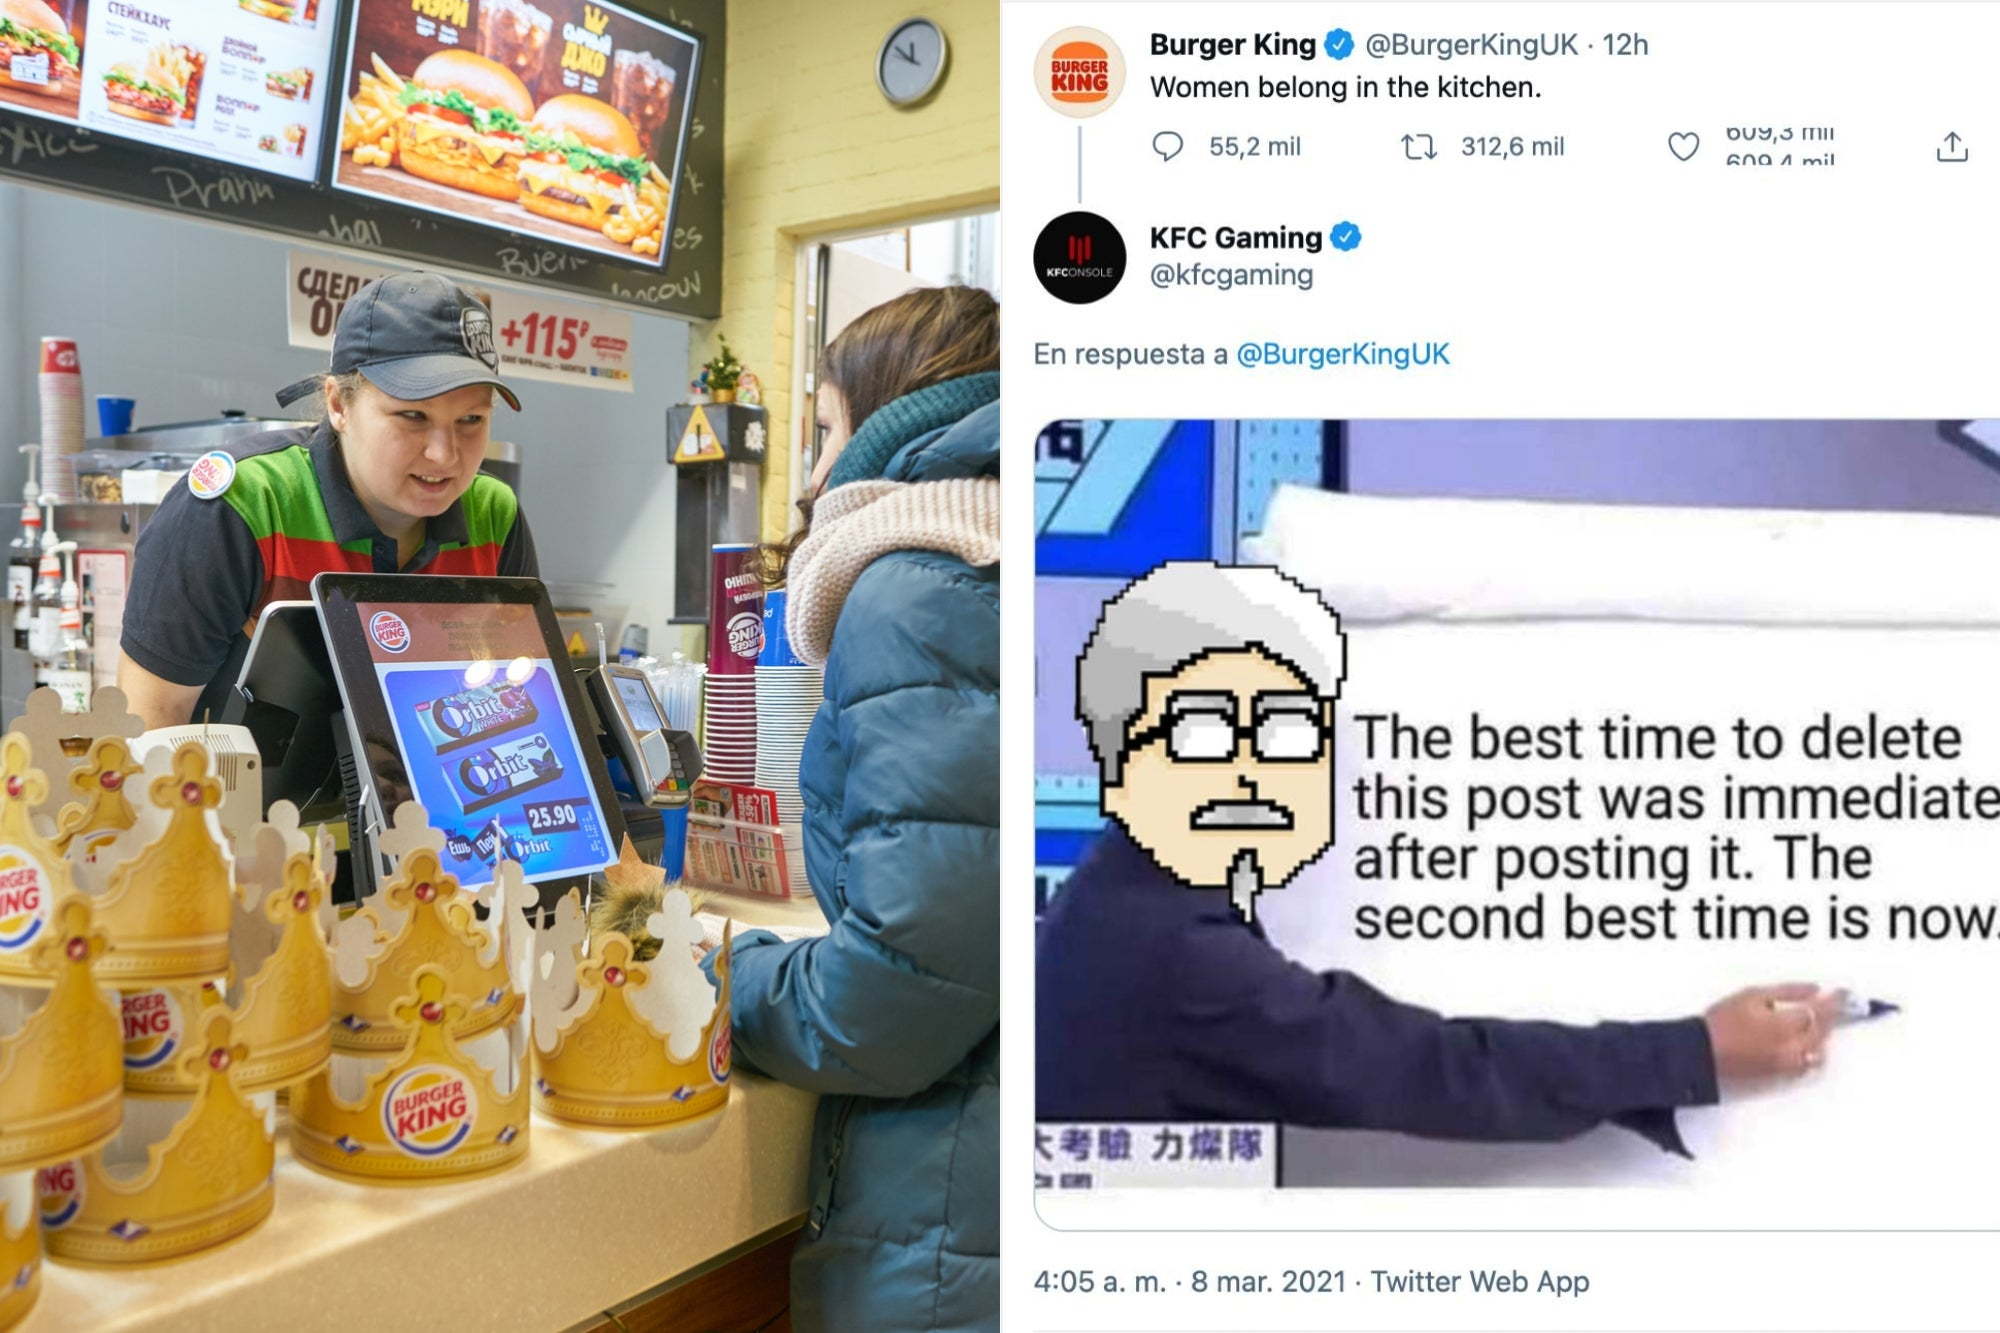 Burger King Tweets Women Belong In The Kitchen And Social Media Is On Fire